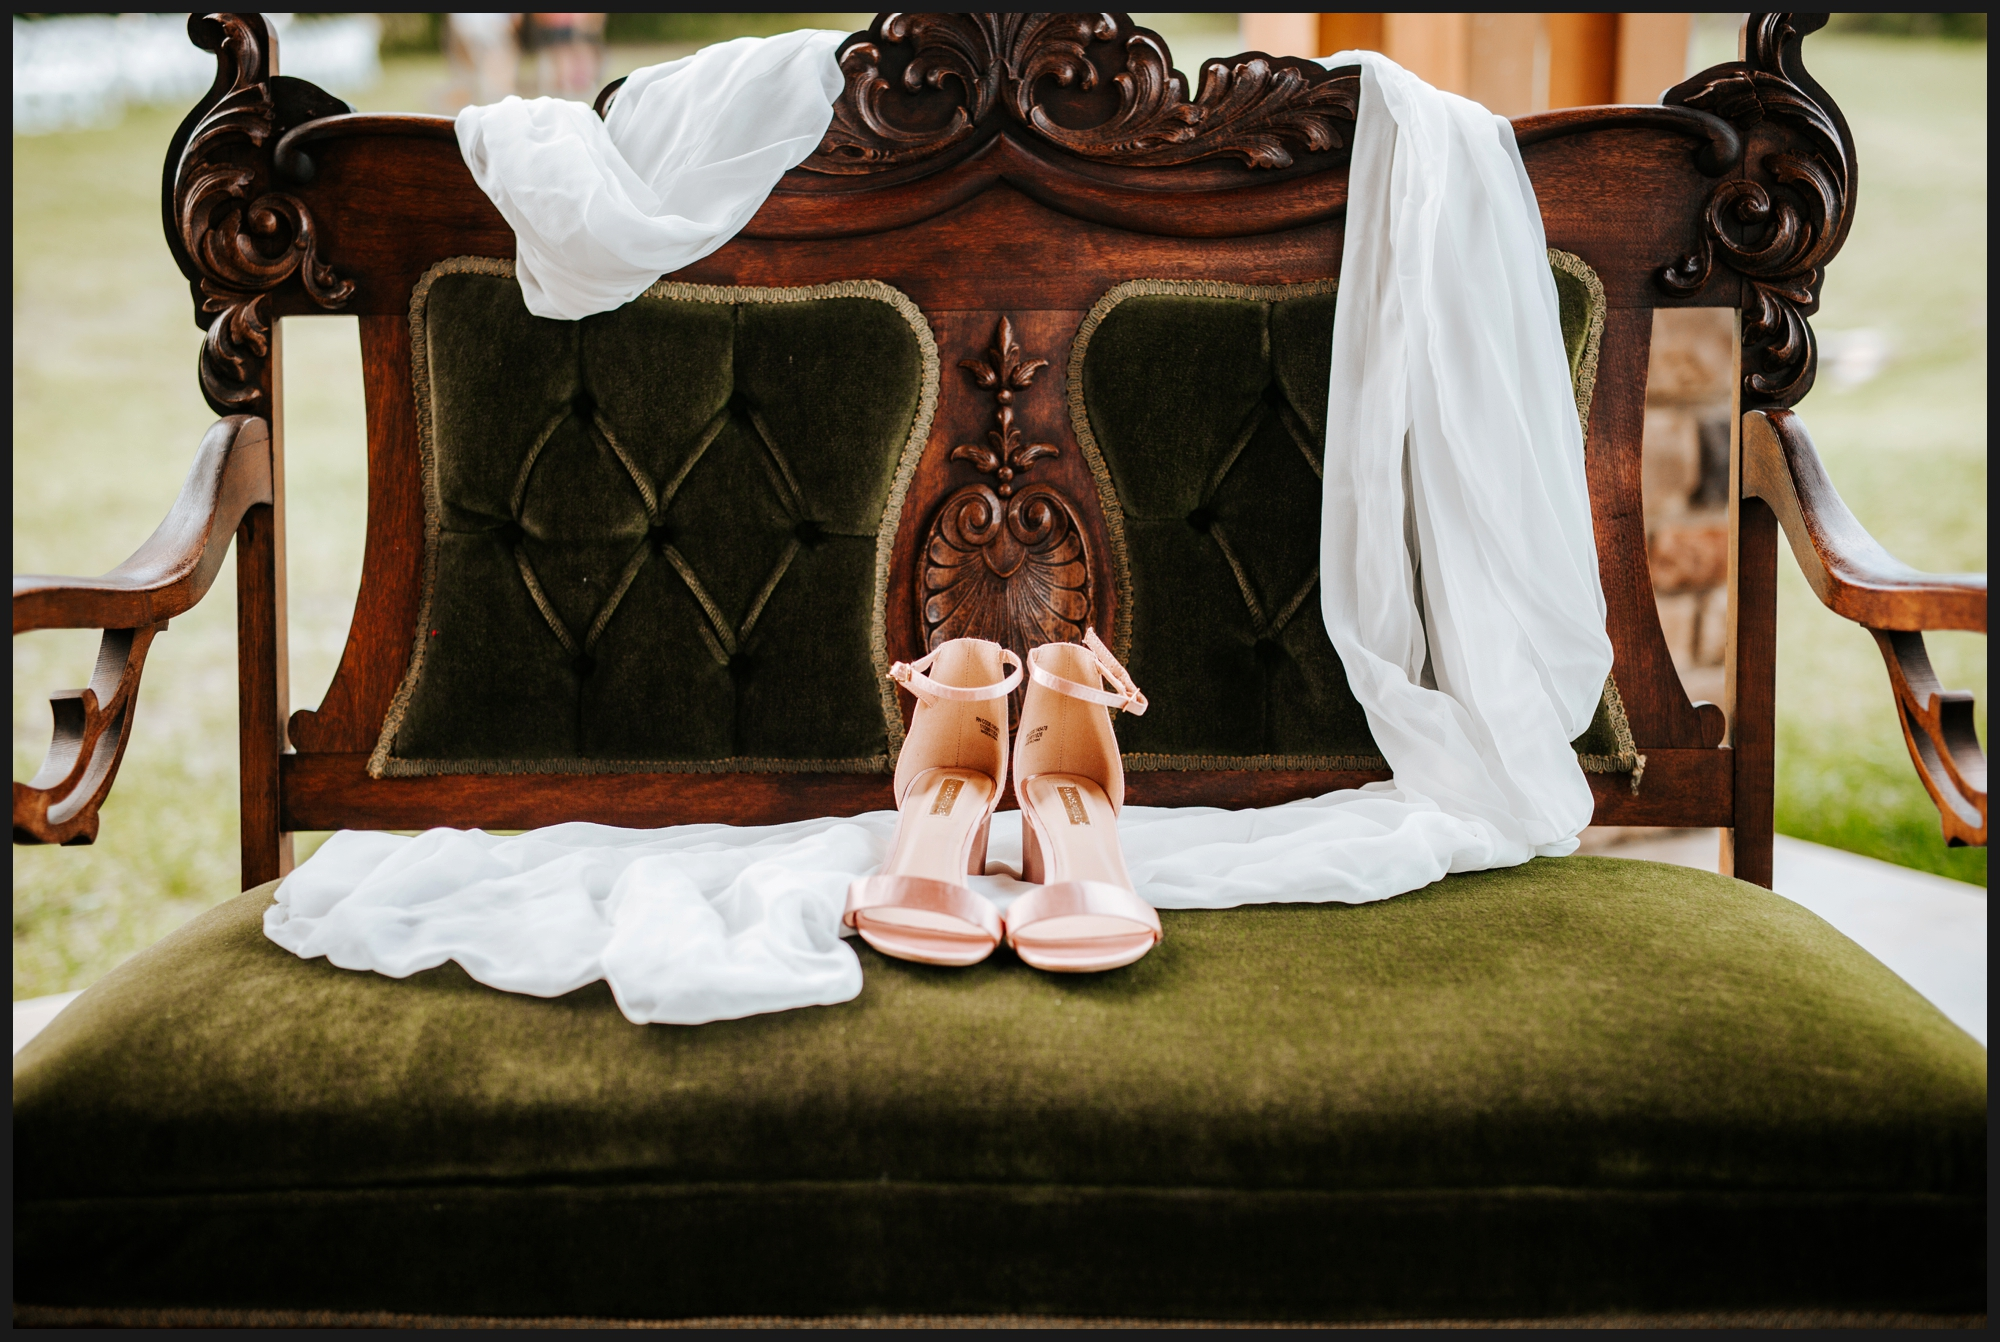 Orlando-Wedding-Photographer-destination-wedding-photographer-florida-wedding-photographer-bohemian-wedding-photographer_0110.jpg